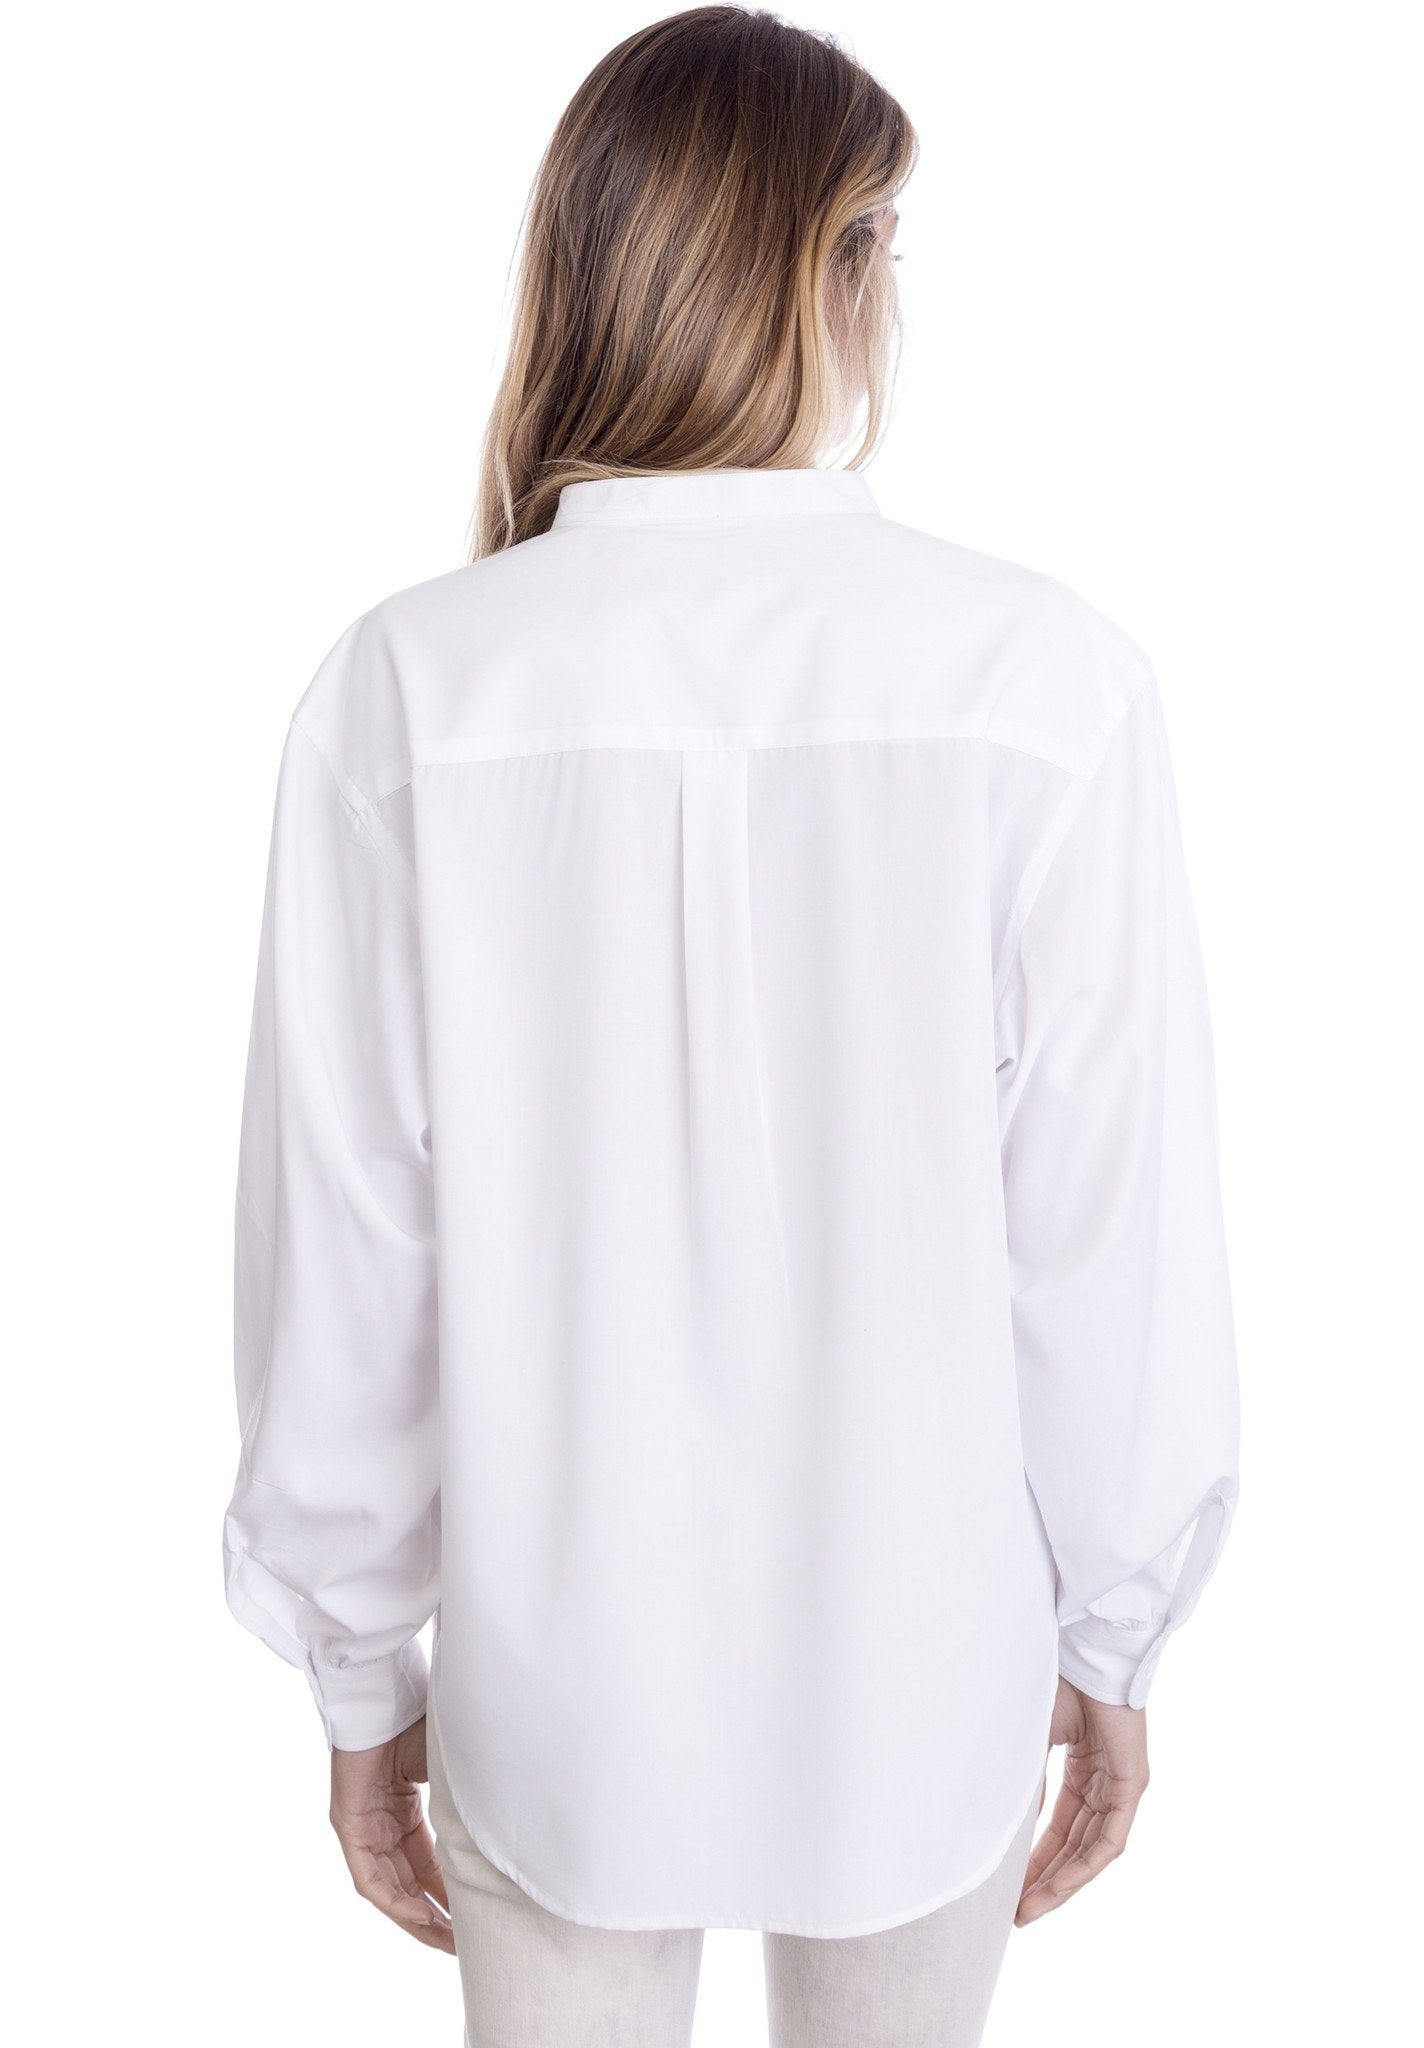 Poet White Romantic Shirt